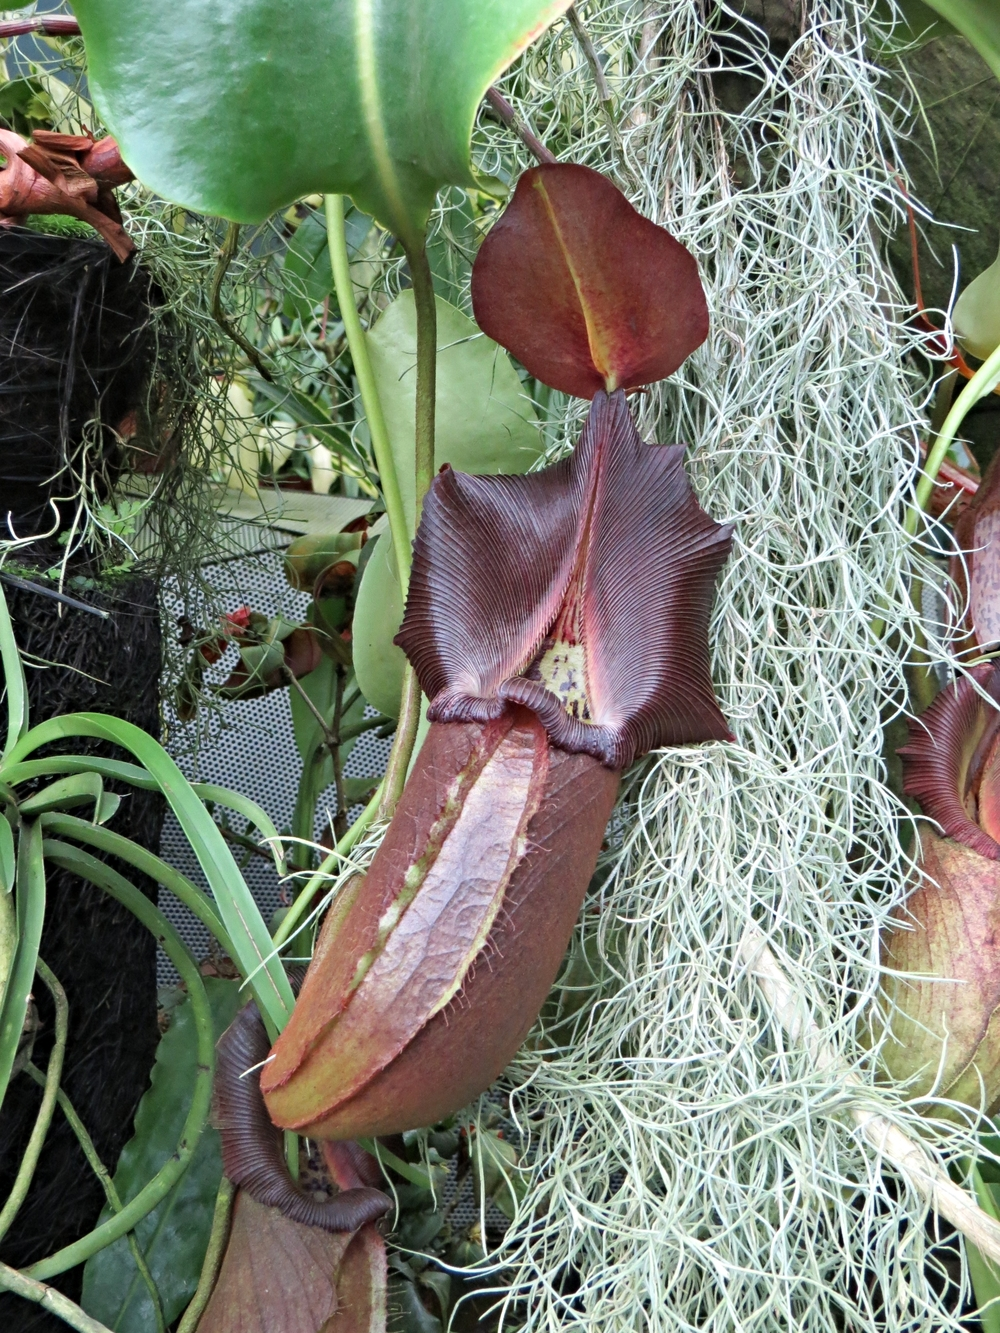 One species of Pitcher plant